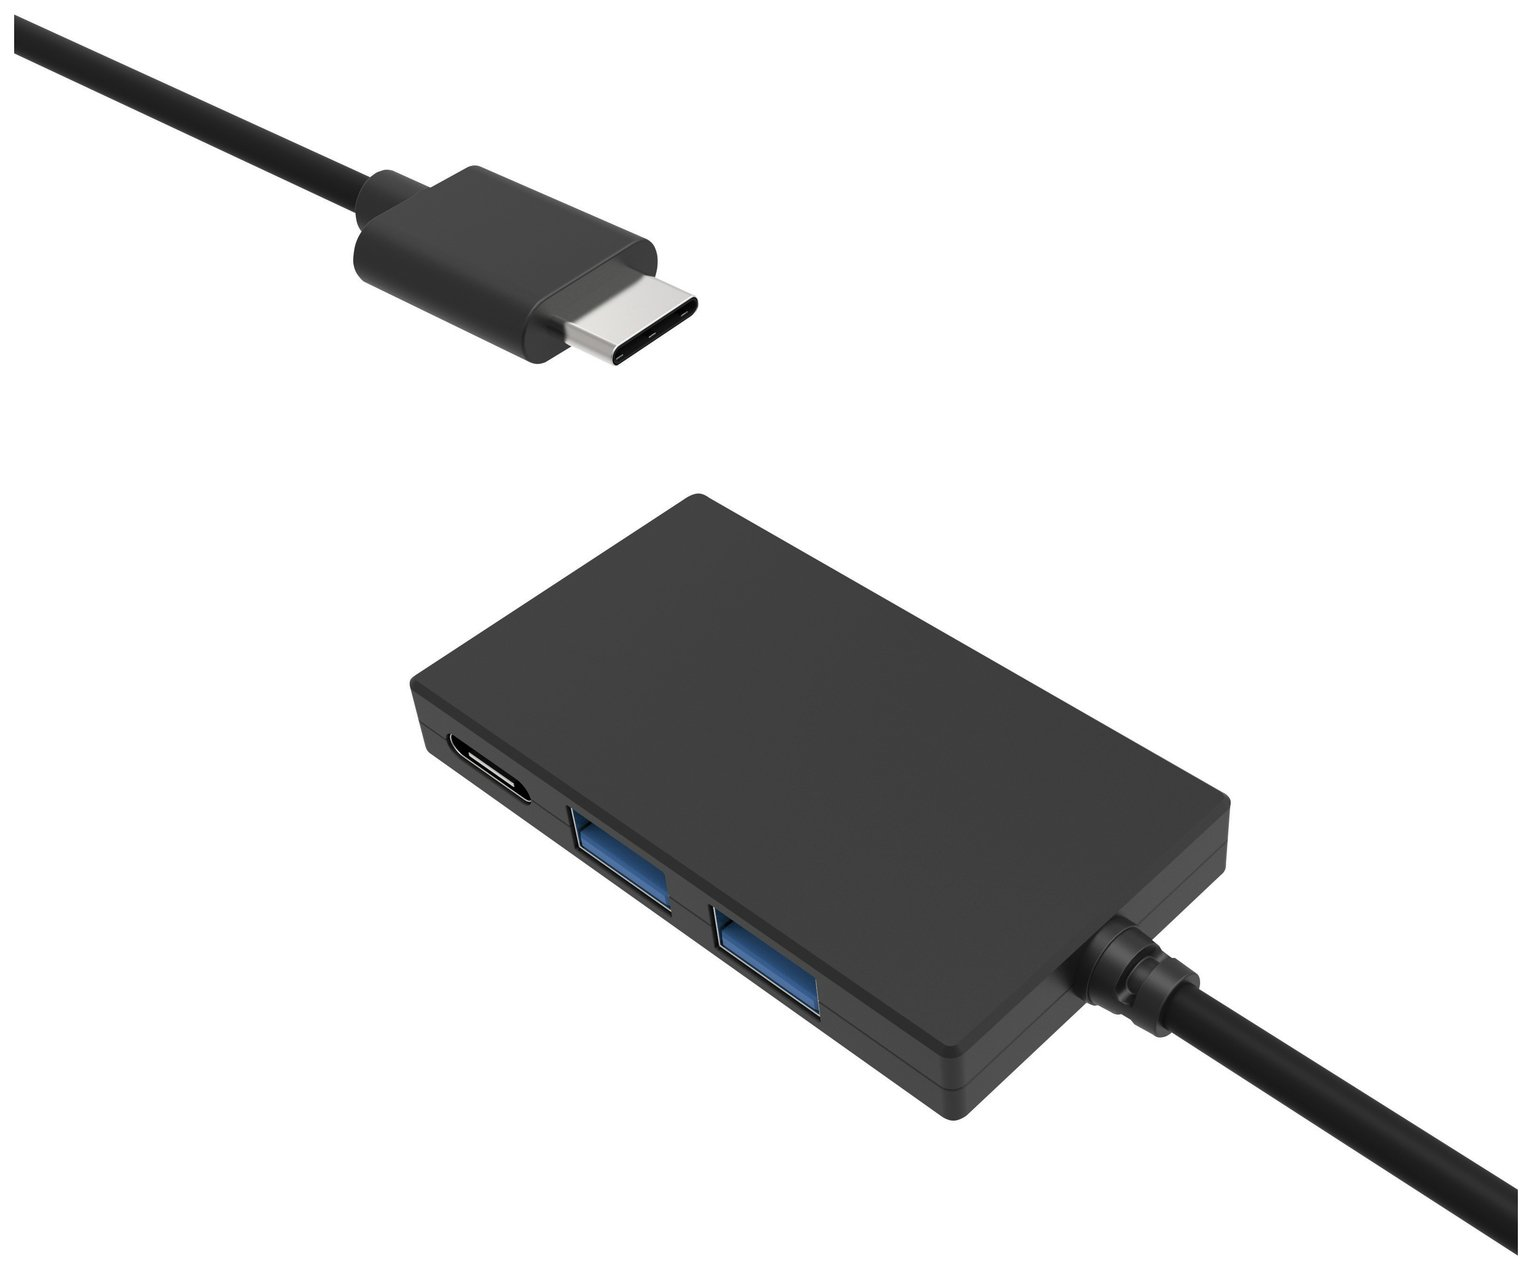 Image of iStar - USB Type C to - USB Type C 3 Port Hub